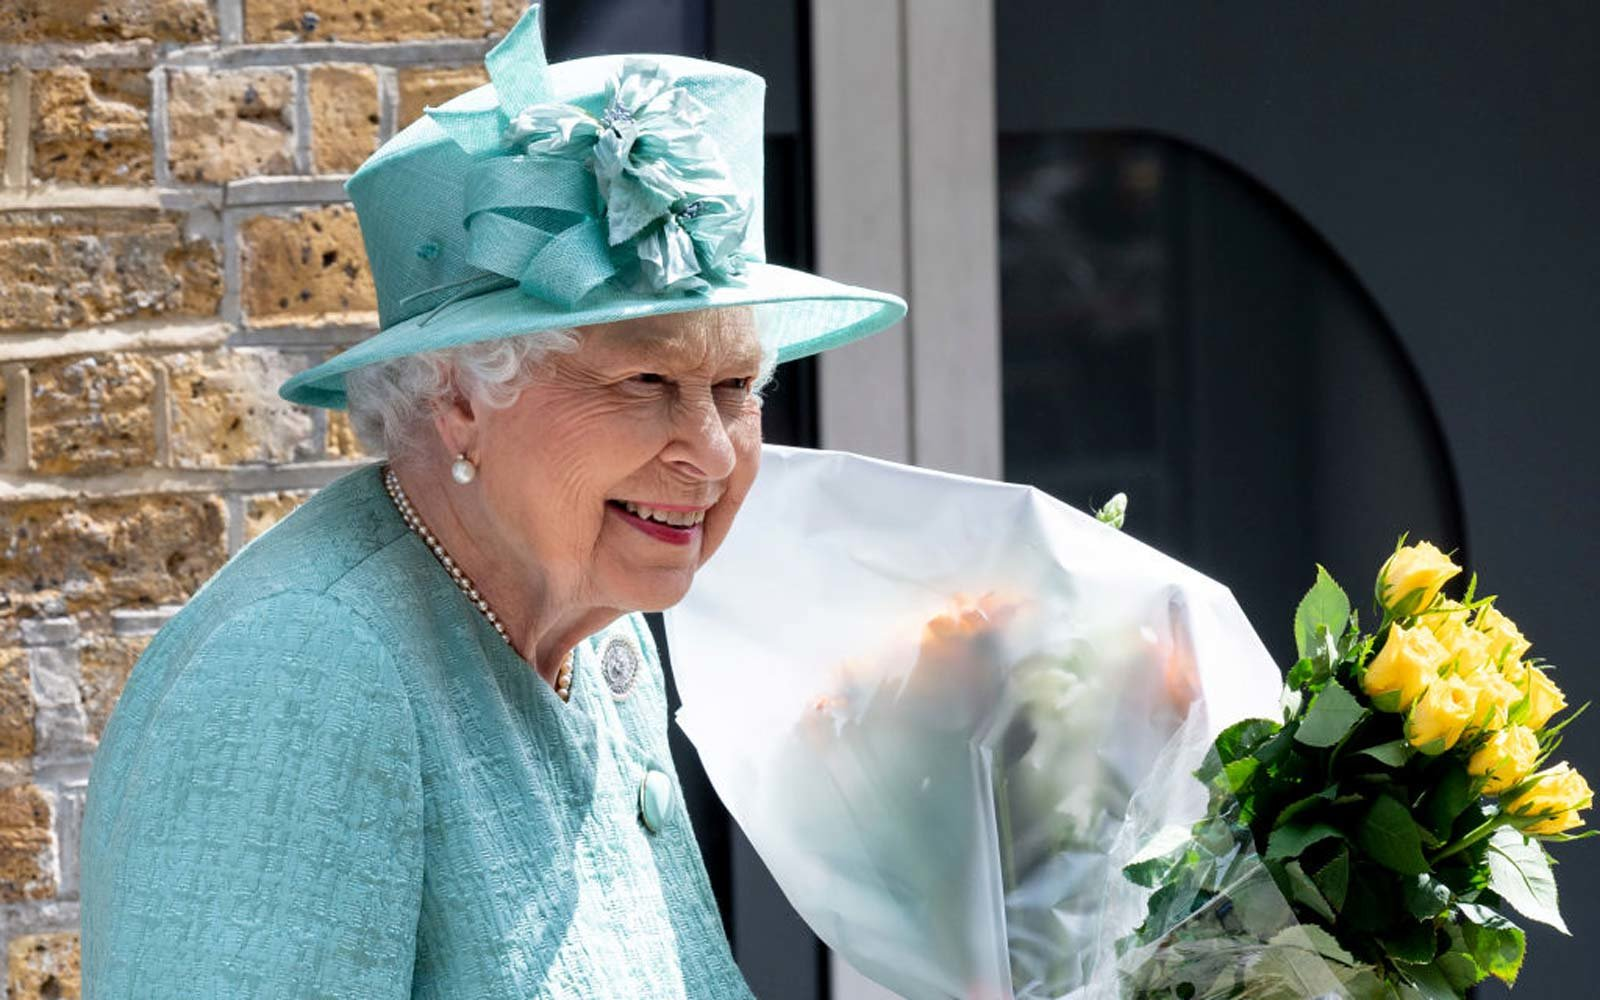 Queen Elizabeth Had the Best Reaction to Being Taught to Use a Self-checkout Machine